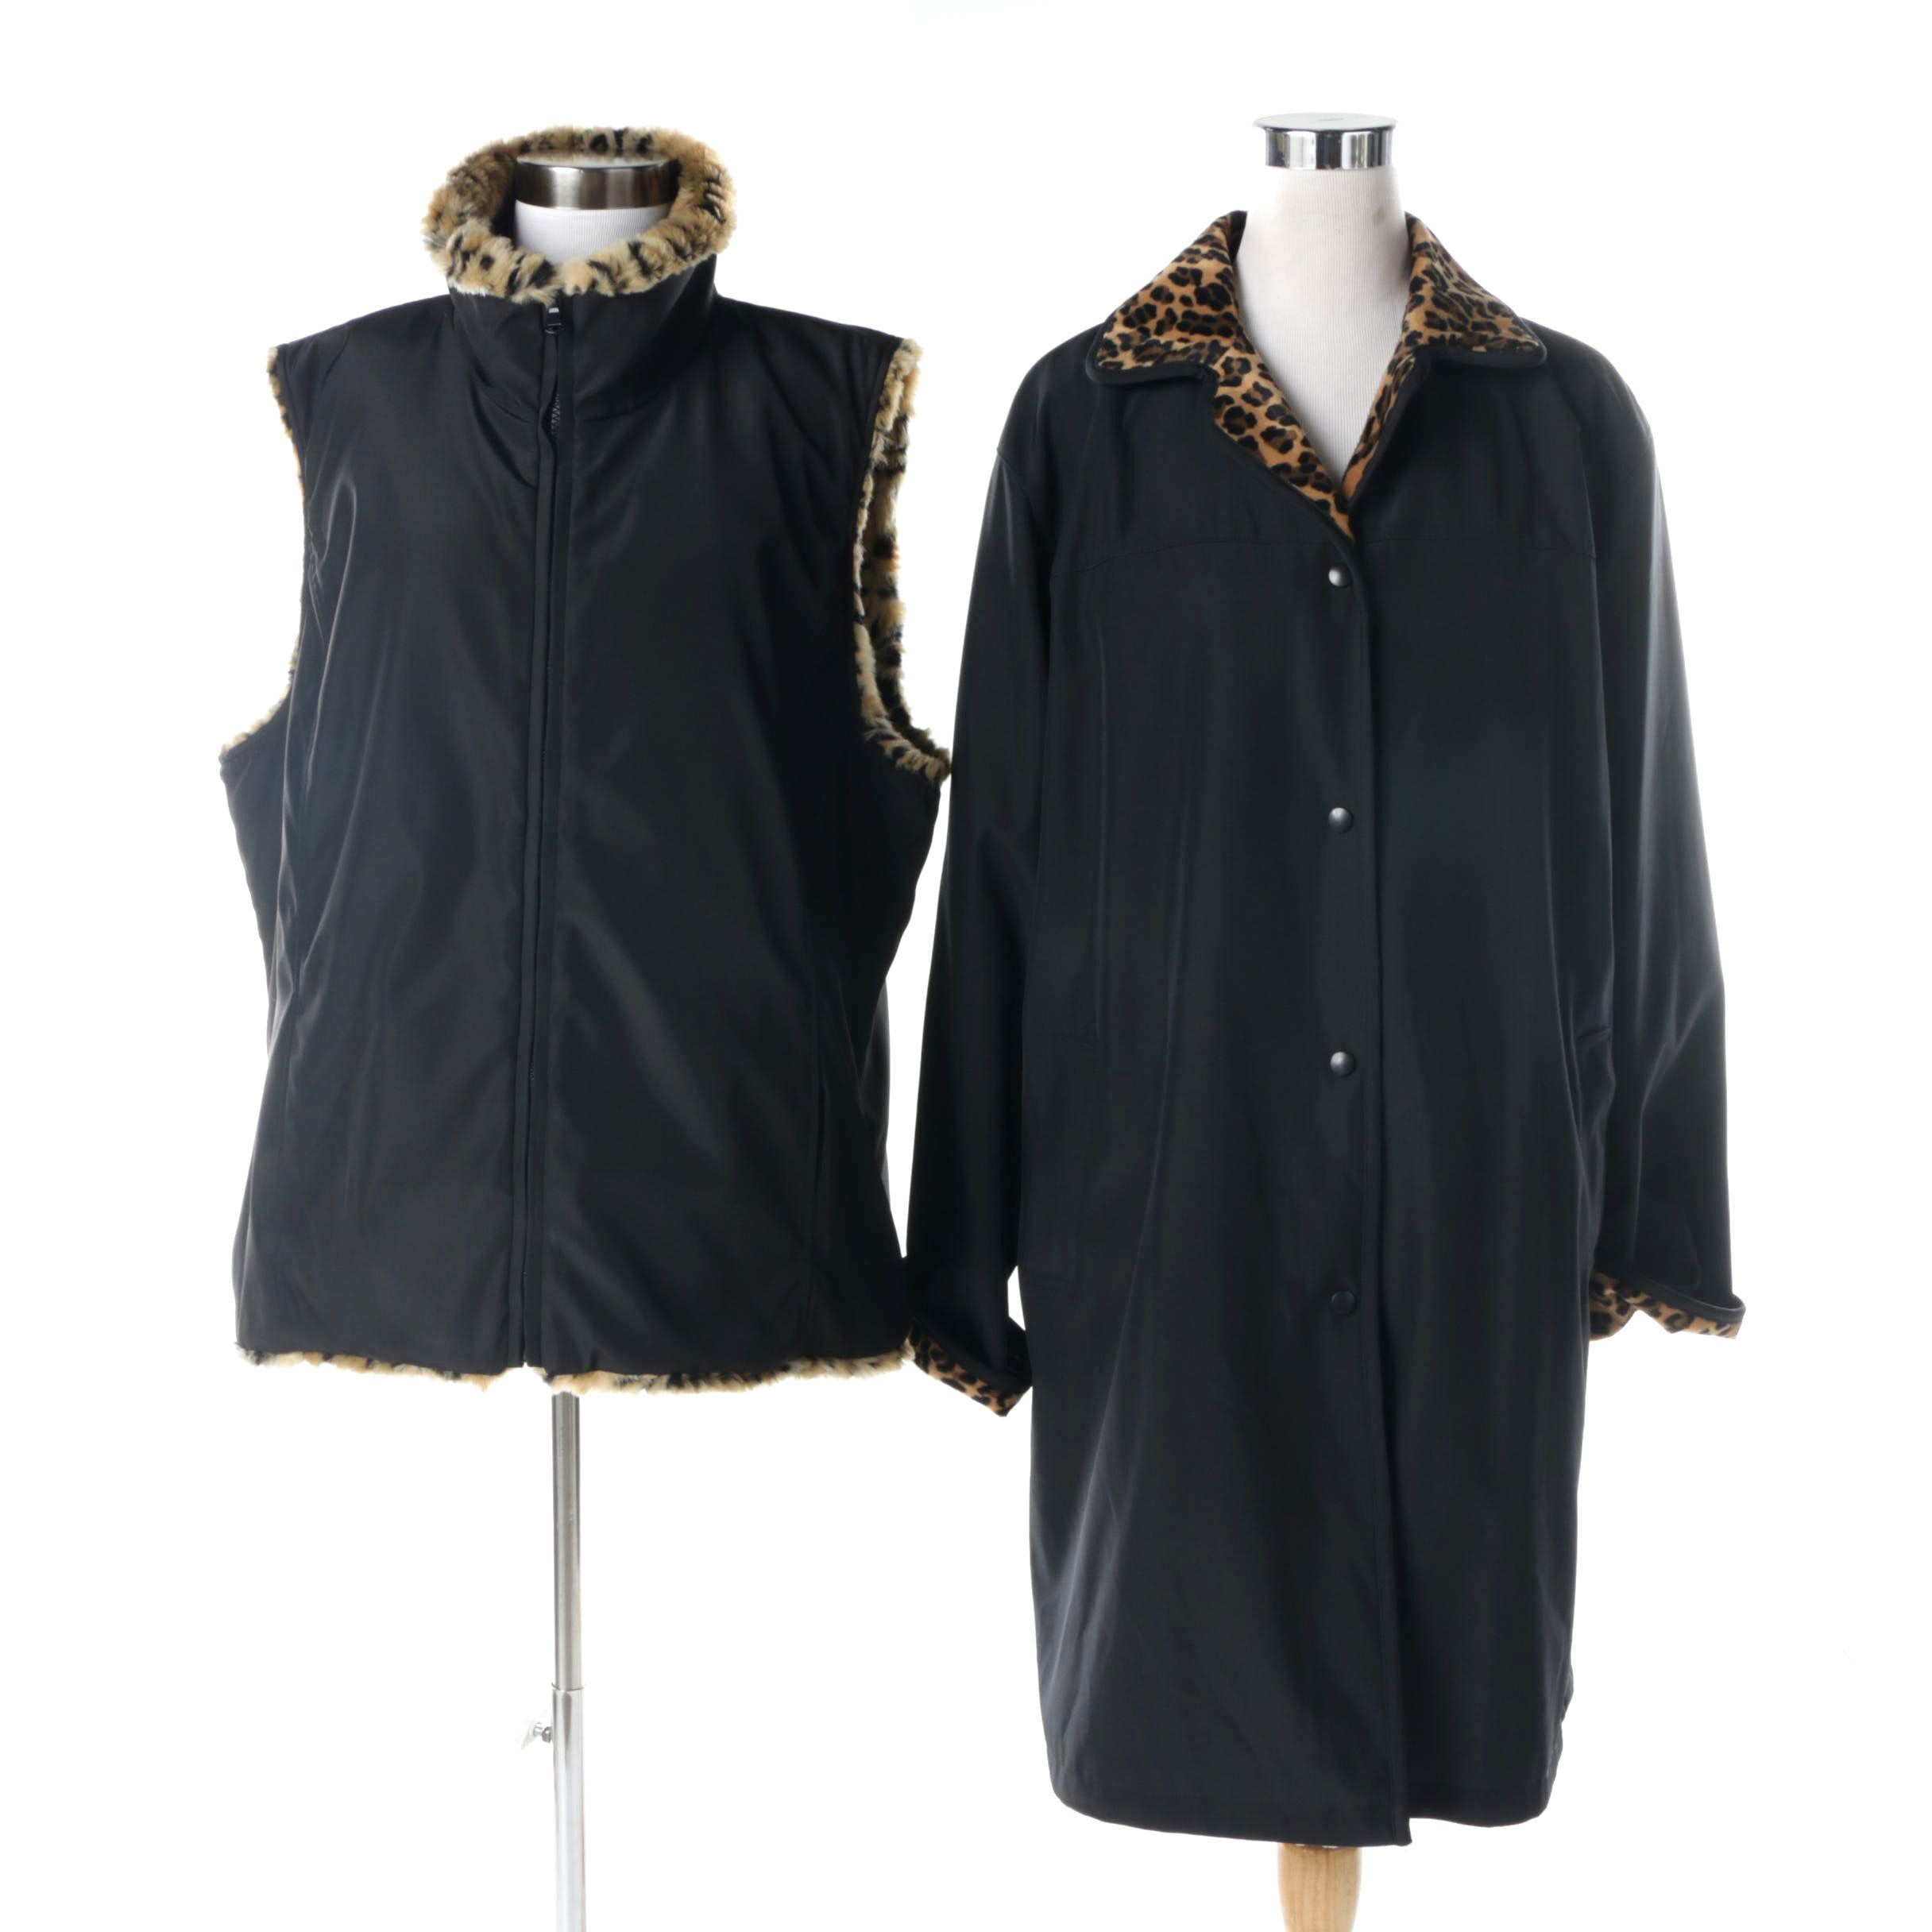 Women's Reversible Fabric and Faux Fur Outerwear